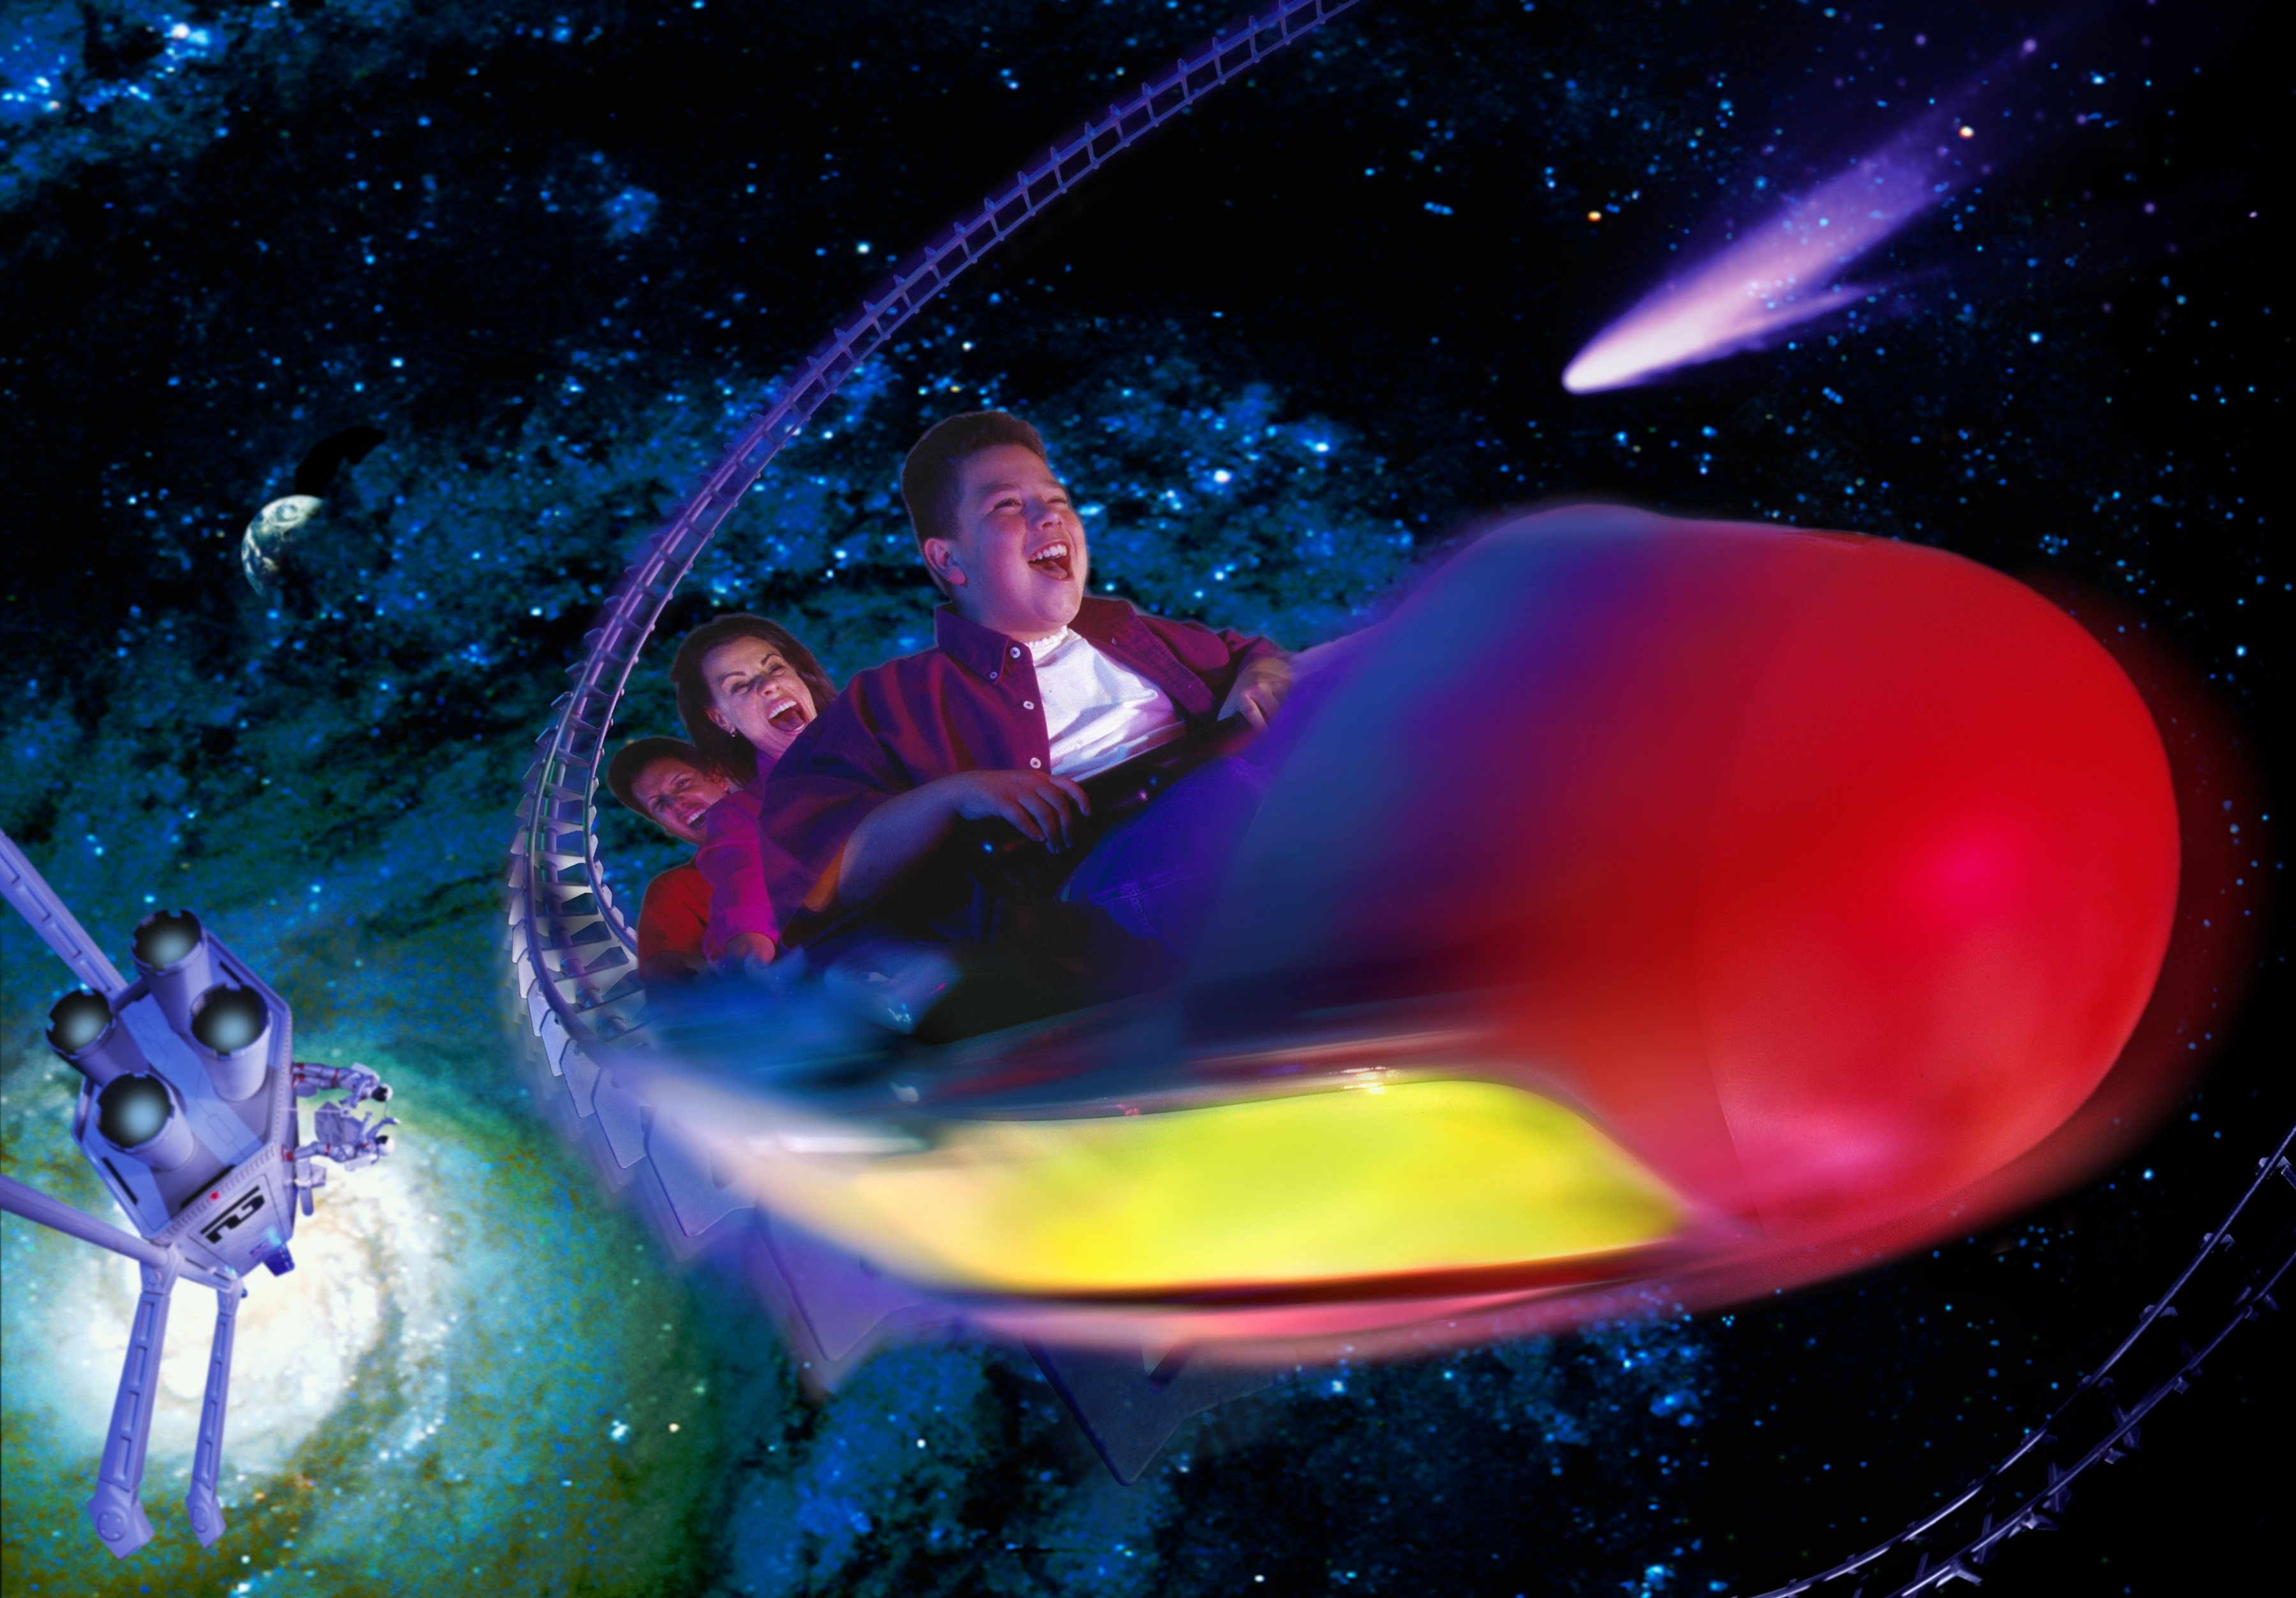 space matrix for walt disney Free essays on space matrix of walt dis for students use our papers to help you with yours 1 - 30.